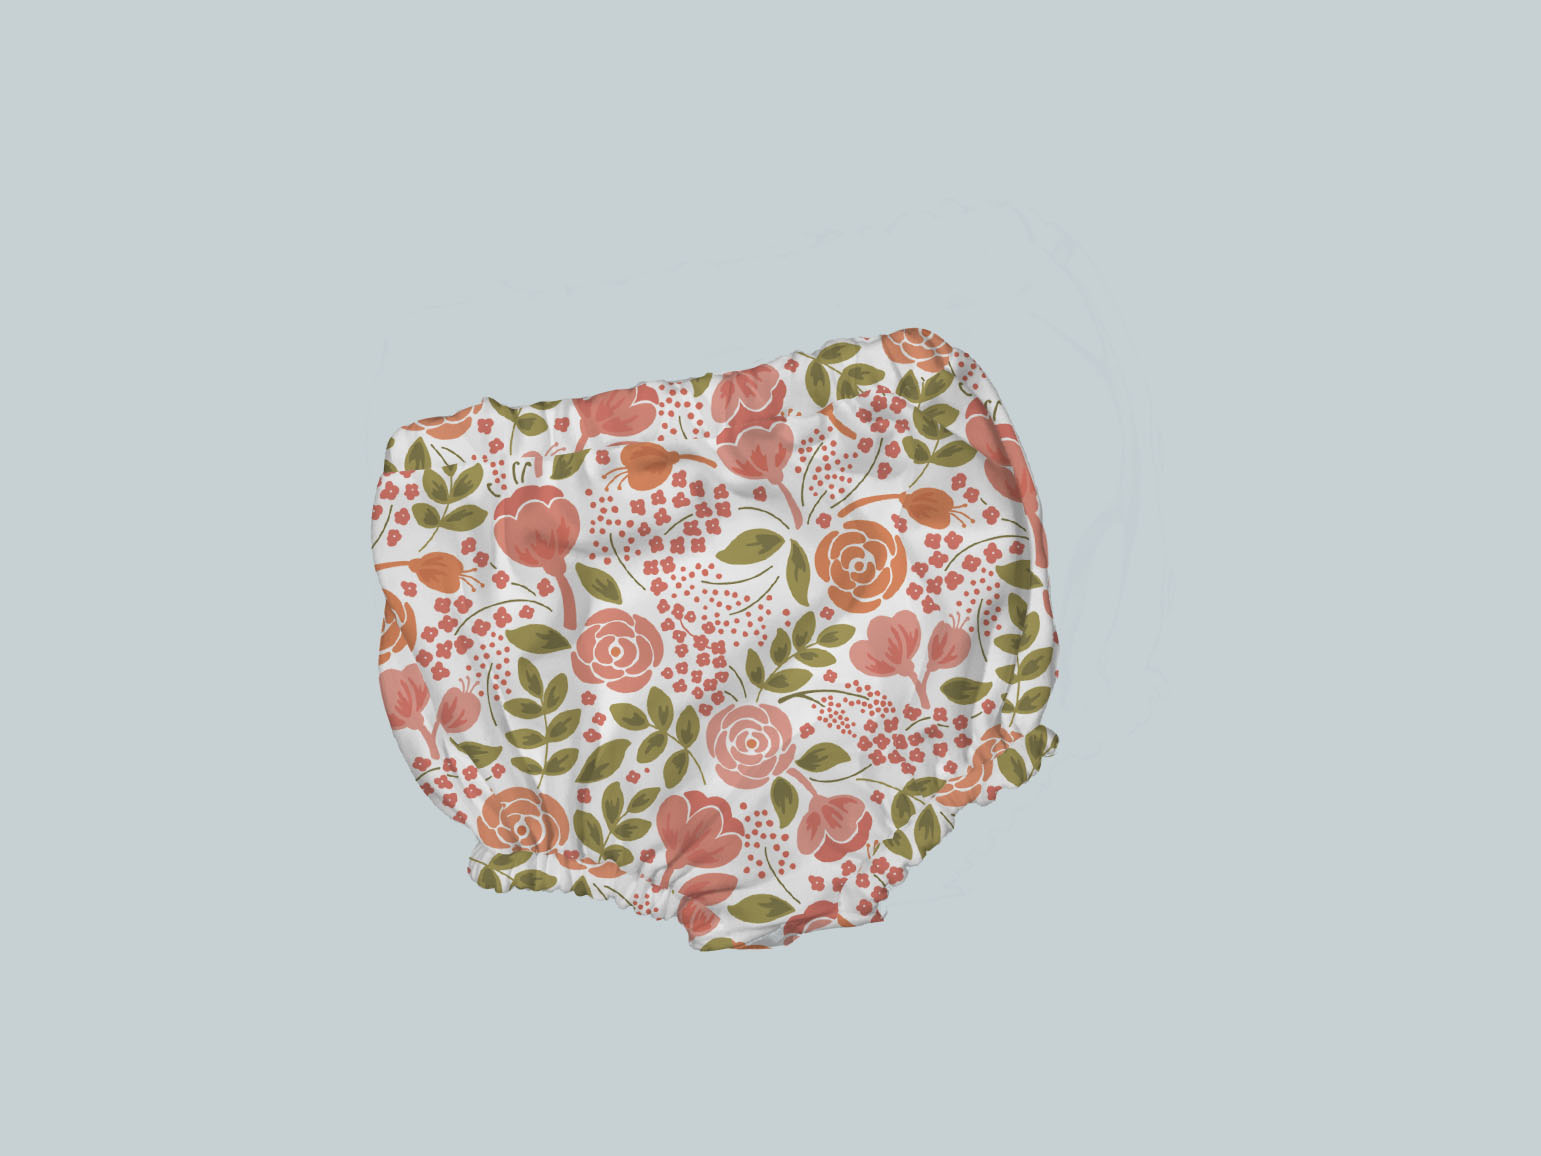 Bummies/Diaper Cover - Coral Flowers